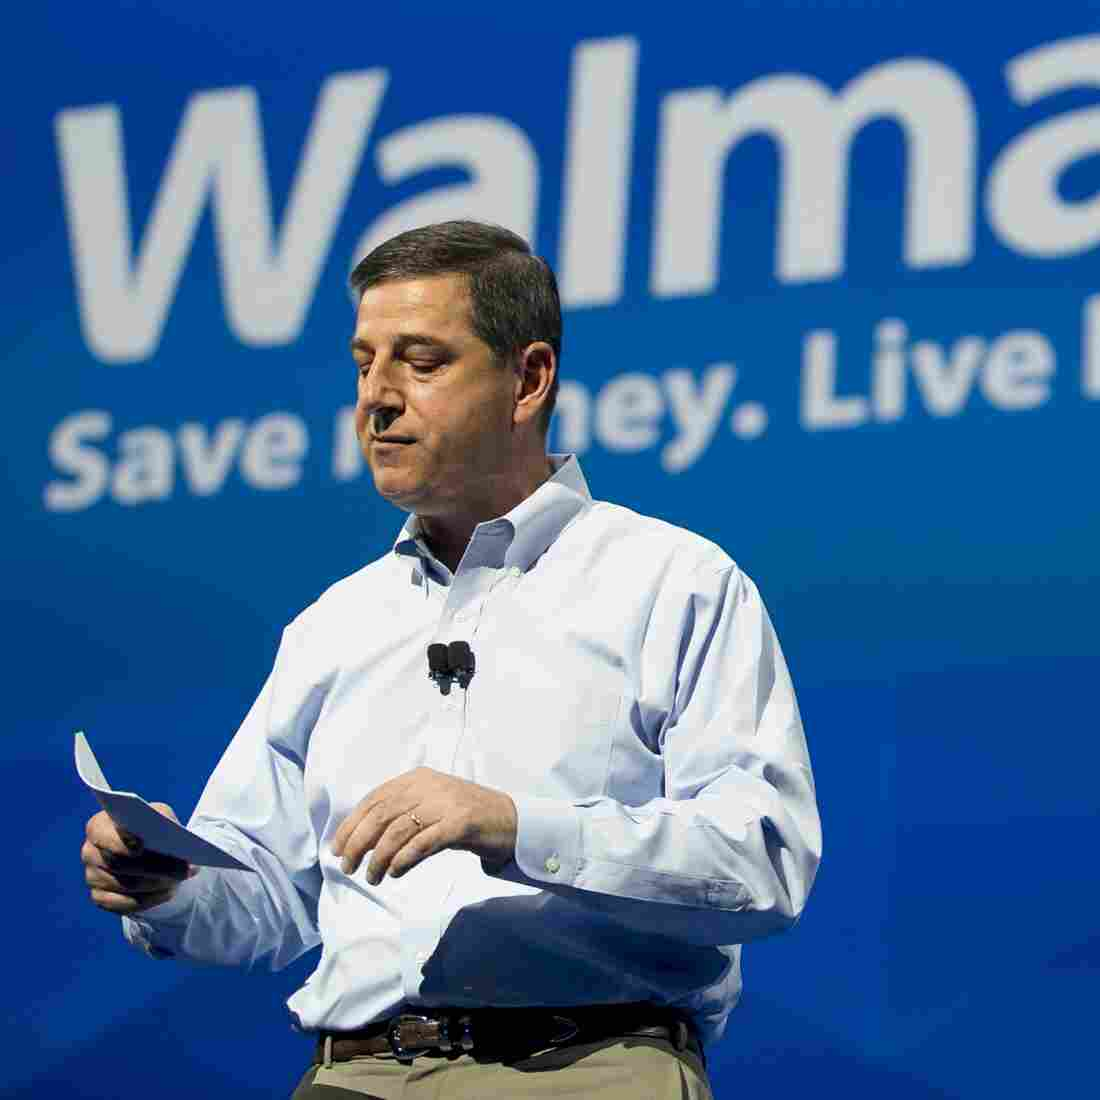 Wal-Mart Meeting Spurs Protests Over Low Pay, Safety Issues